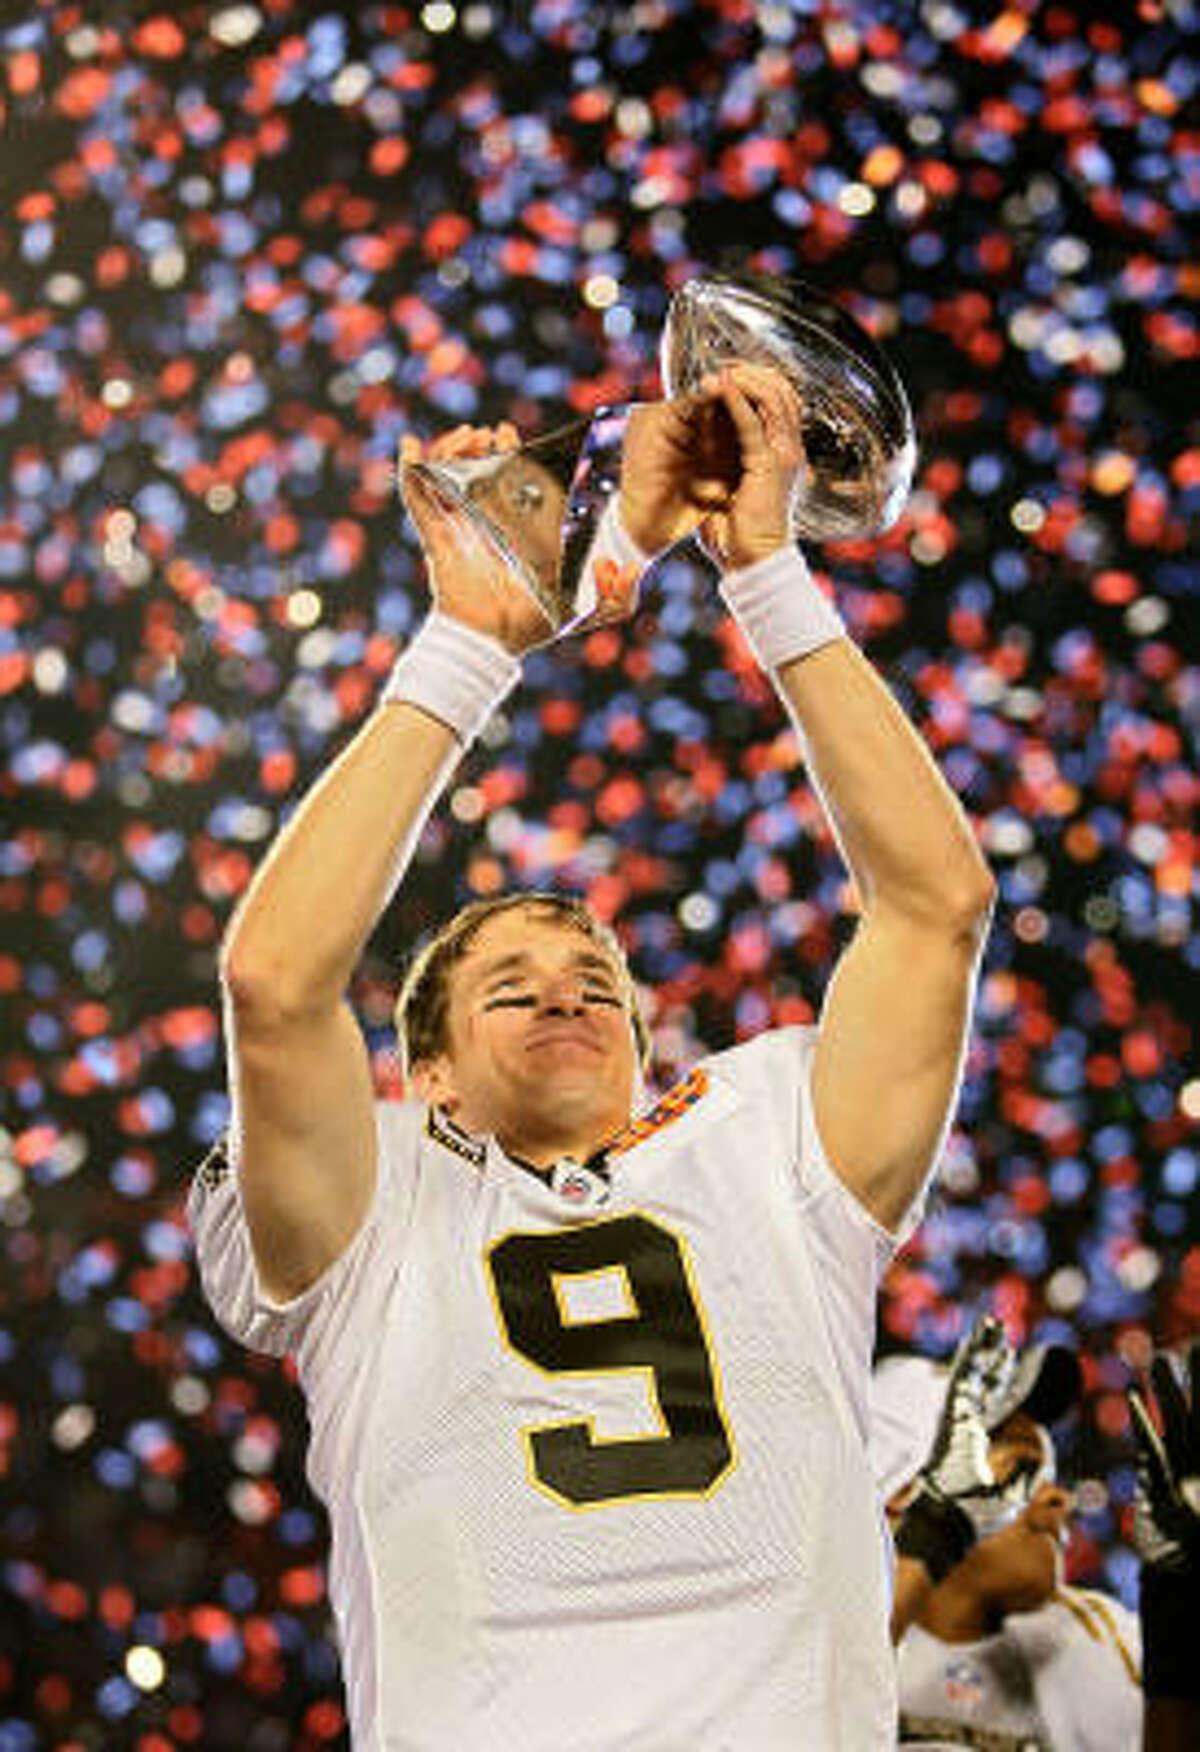 2. Almost five years after Hurricane Katrina wrecks their hometown, the New Orleans Saints upset the Indianapolis Colts, 31-17, to win Super Bowl XLIV before the largest audience in U.S. TV history (Feb. 7, 2010).